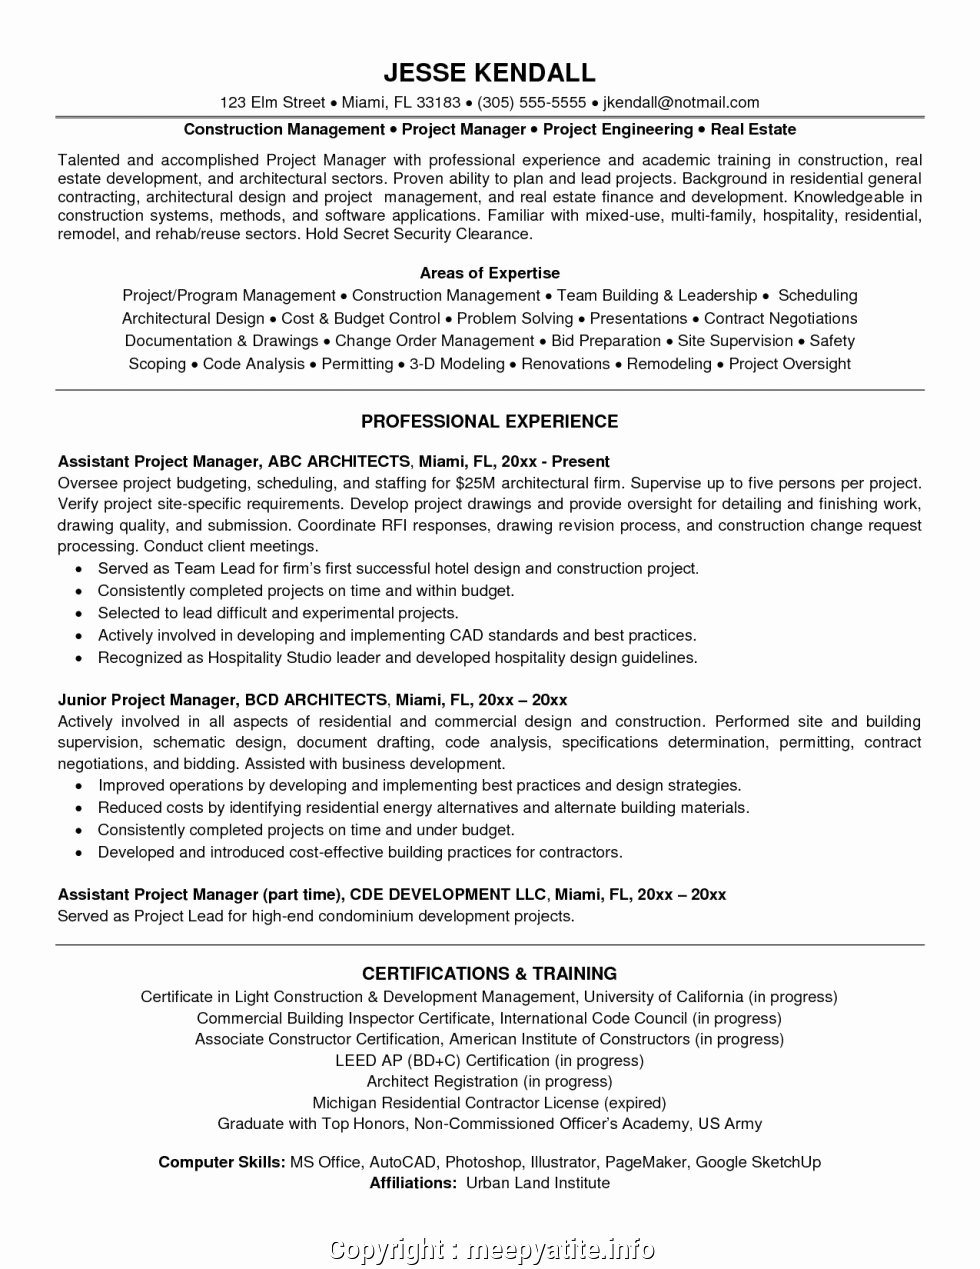 Restaurant General Manager Resume Samples Fresh Professional Restaurant Manager License Restaurant General